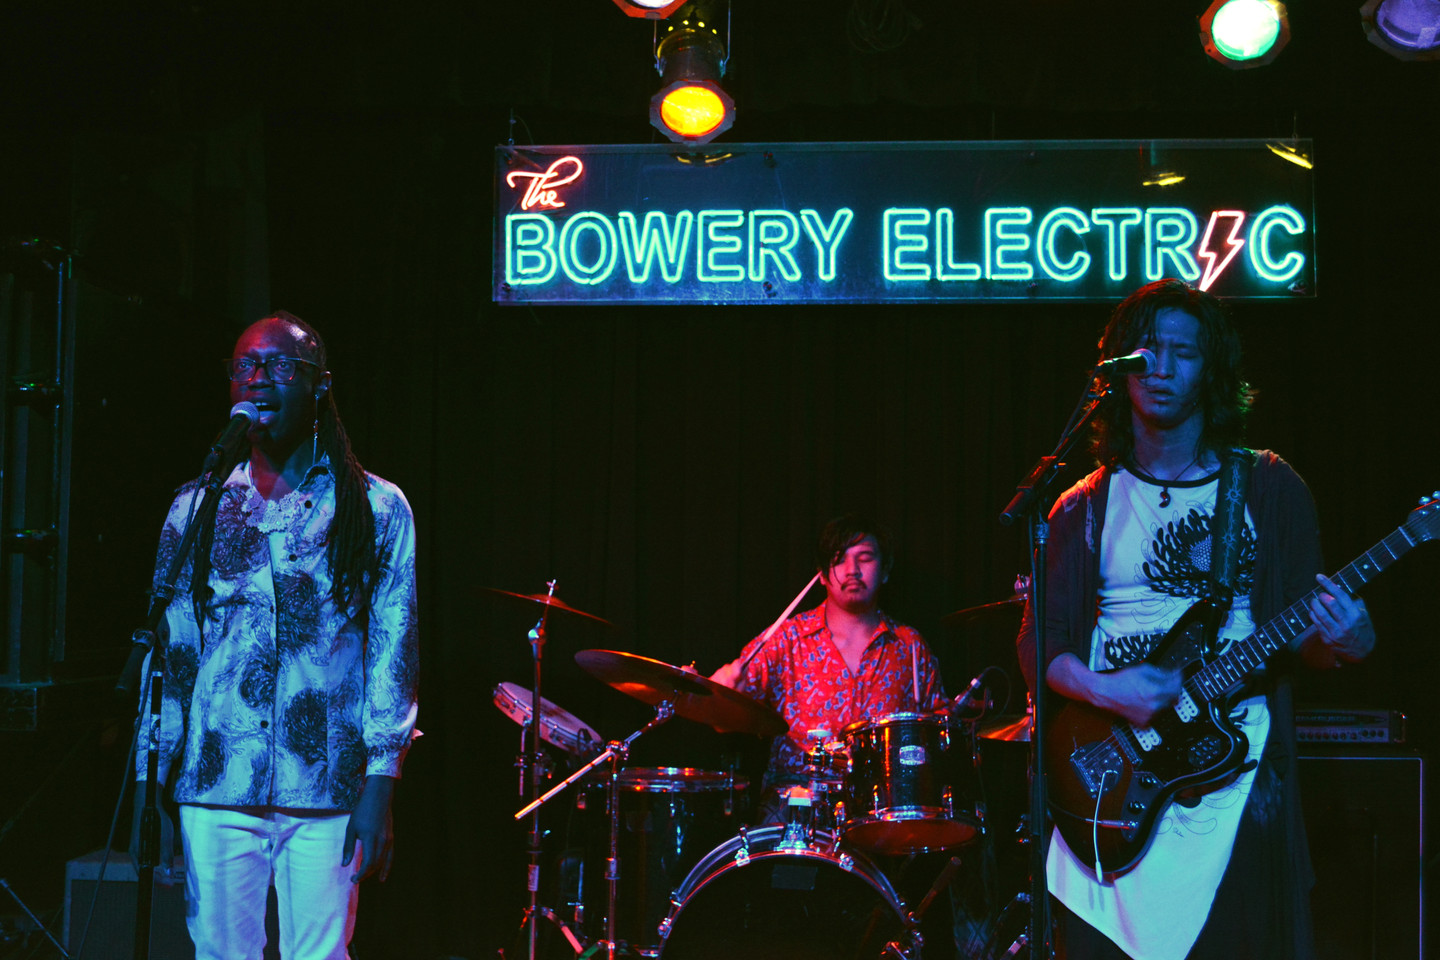 The Bowery Electric 3.18.19